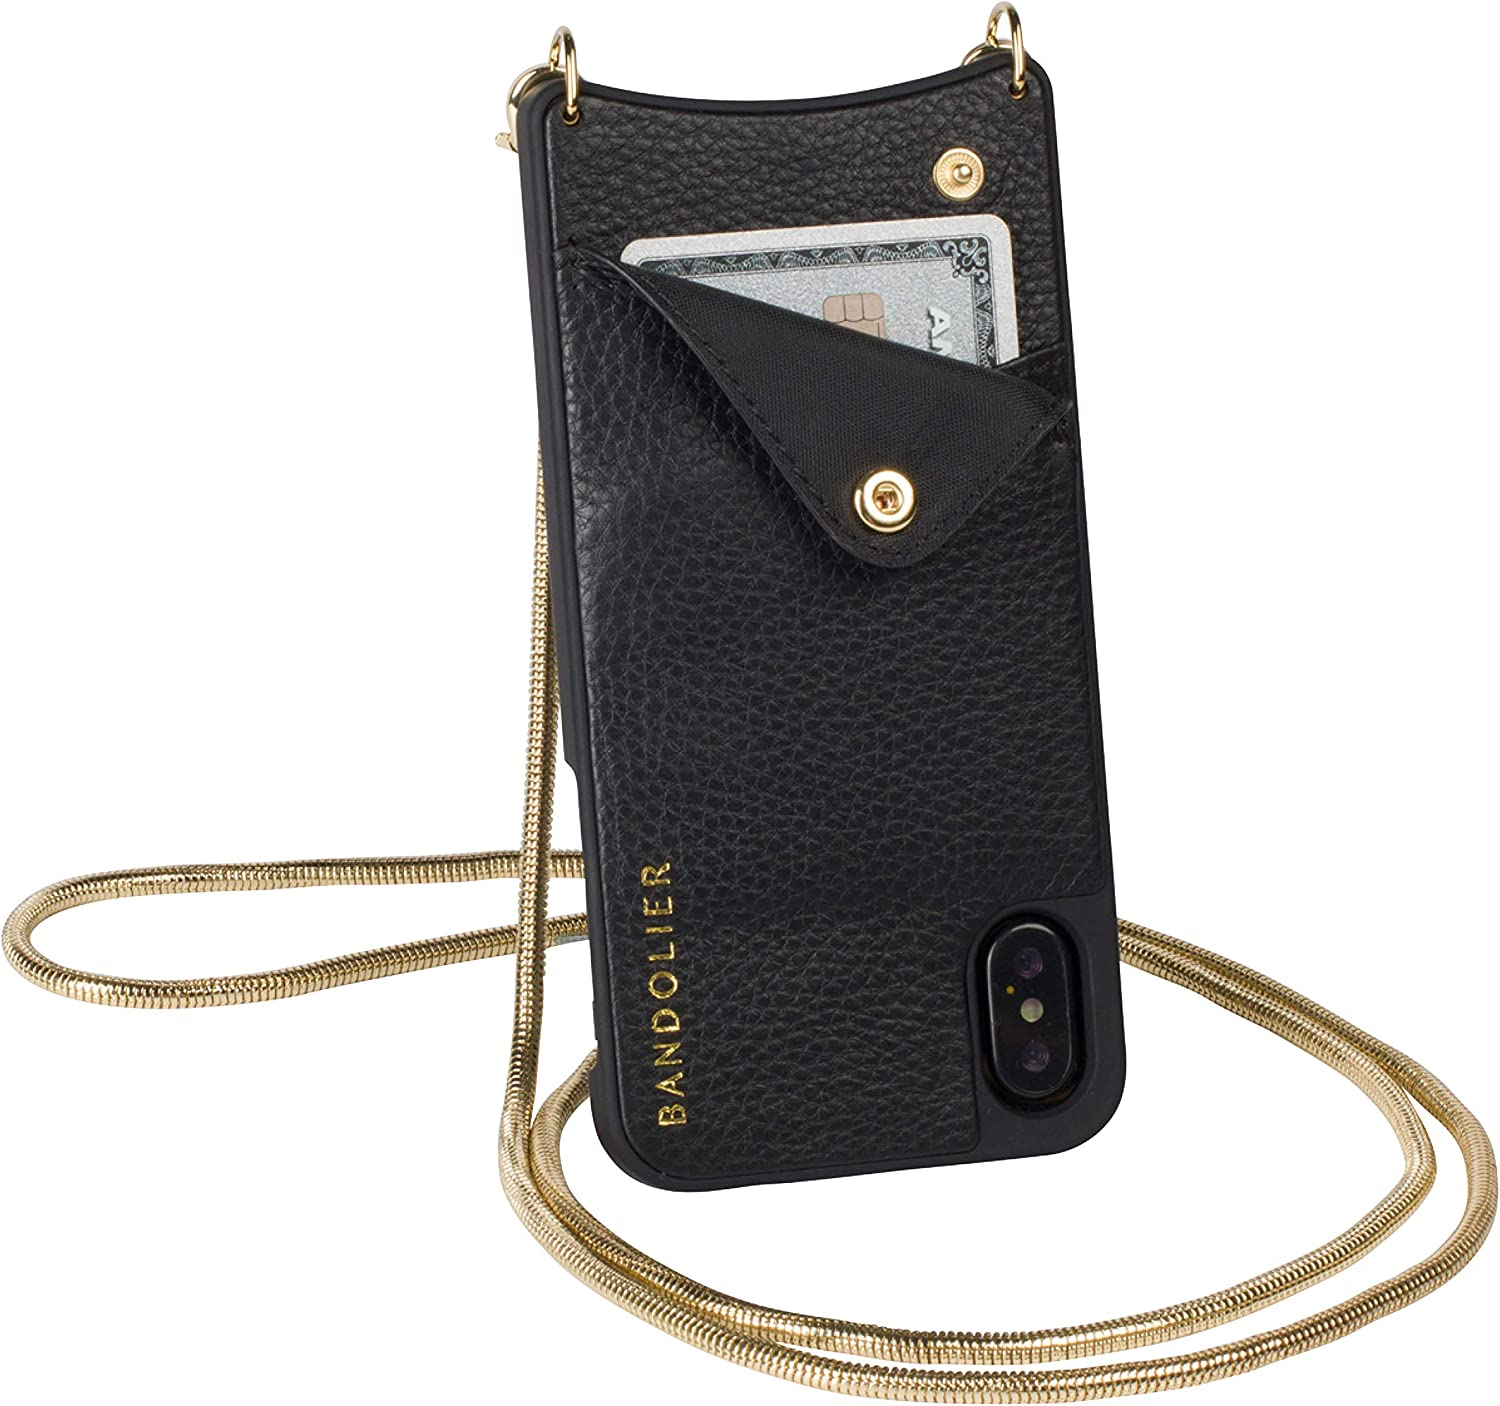 Bandolier Belinda Crossbody Phone Case and Wallet - Black Leather with Gold Detail - Compatible with iPhone X & XS Only